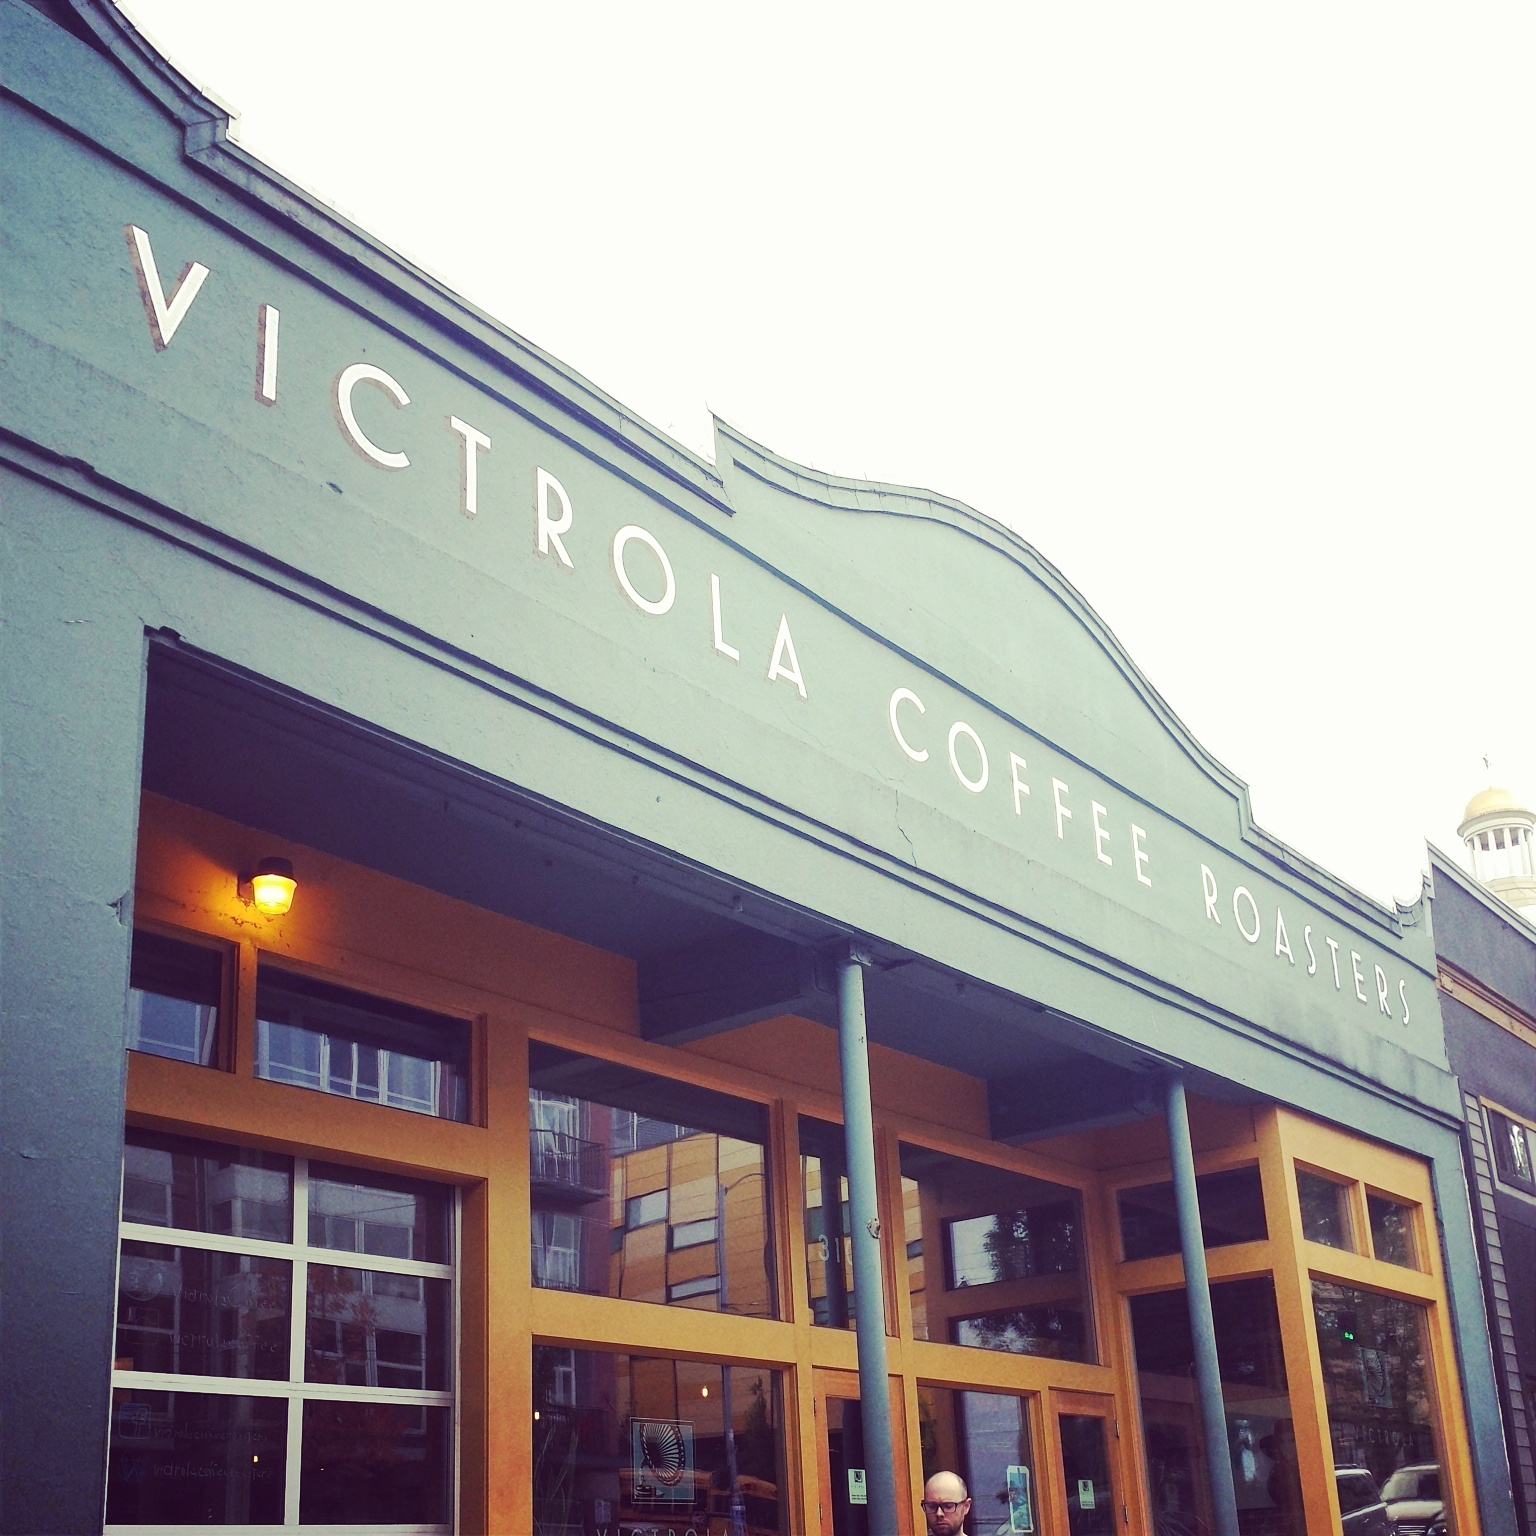 VICTROLA COFFEE ROASTERS.jpg